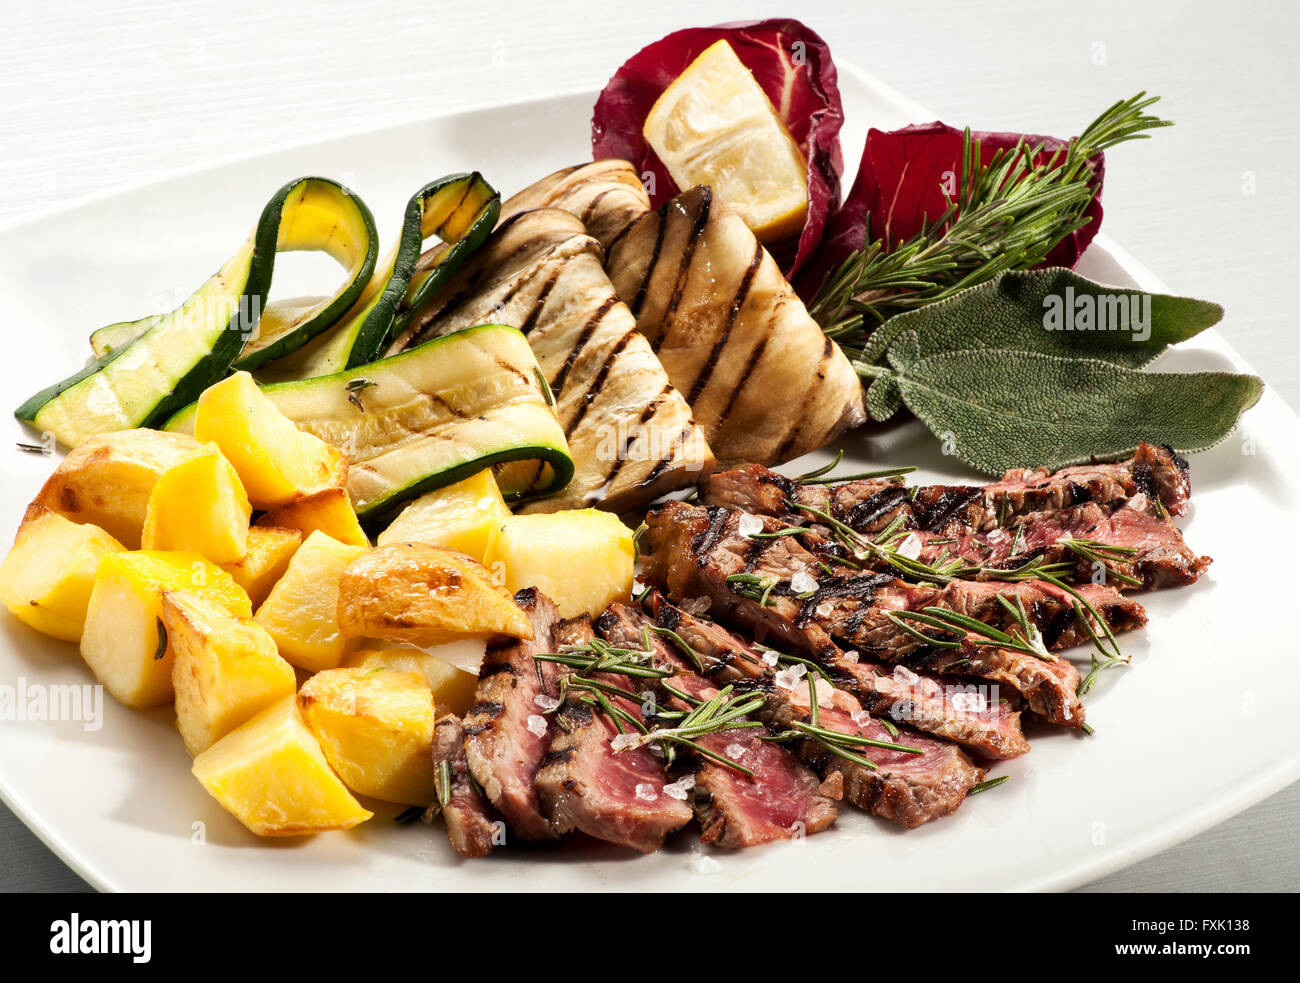 Single serving of rare cooked steak slices, baked yellow potato, eggplant and squash with herbs on plate Stock Photo